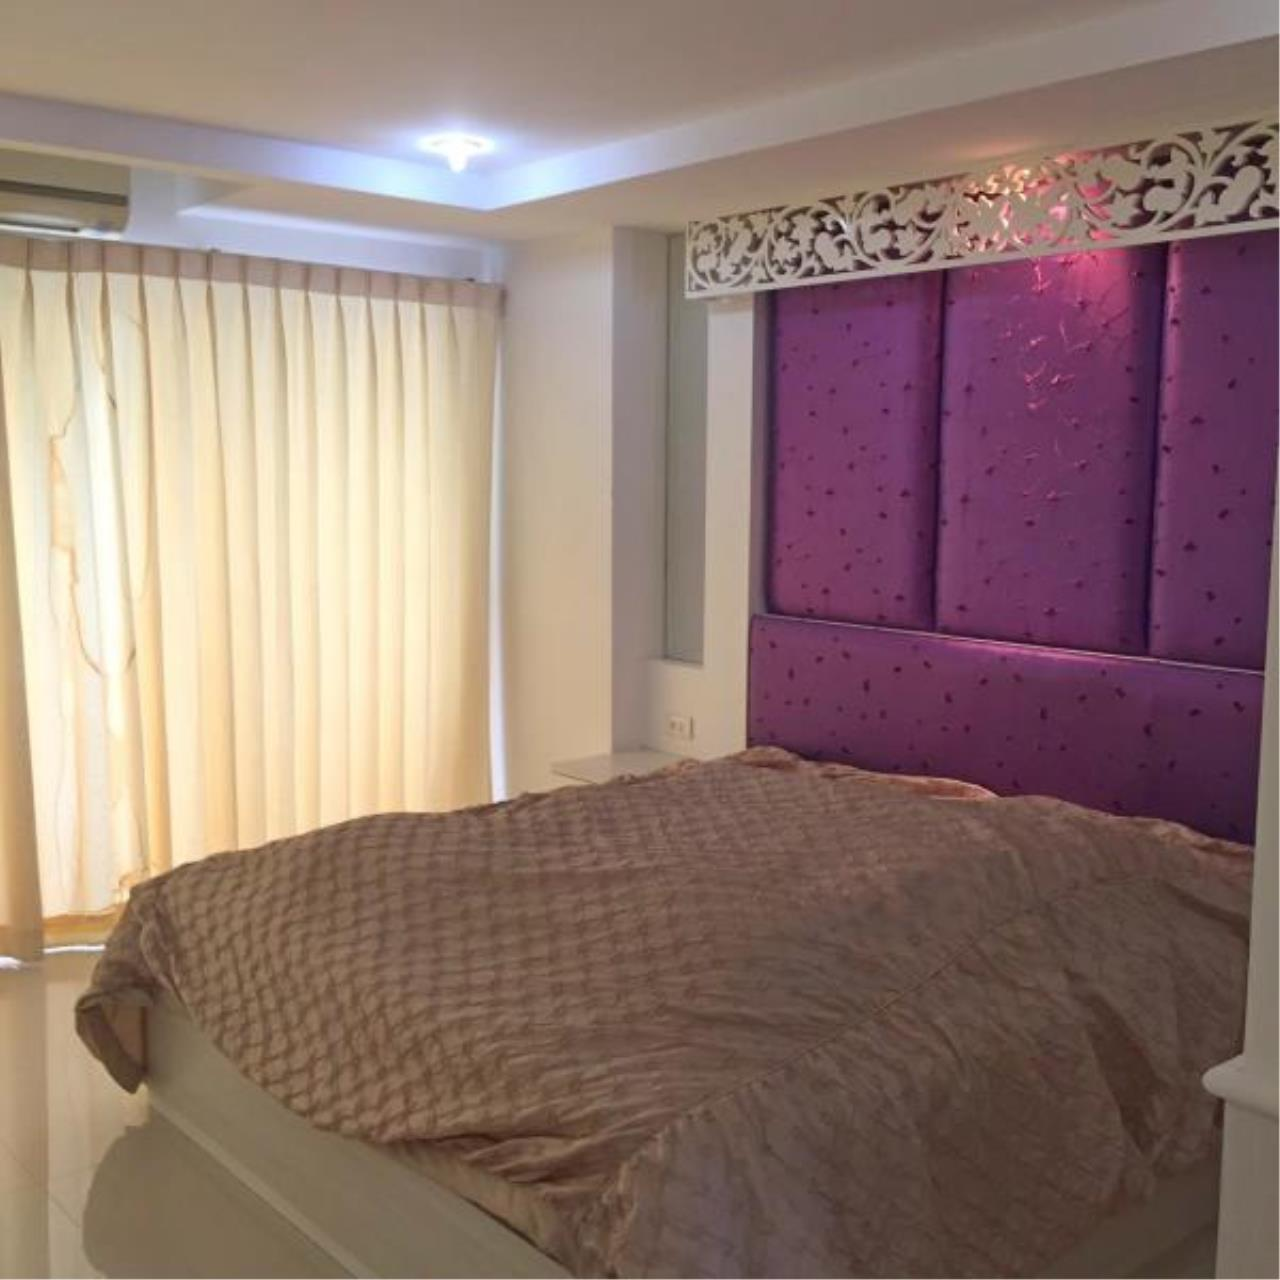 RE/MAX Town & Country Property Agency's Nice studio for sale in Jomtien 8